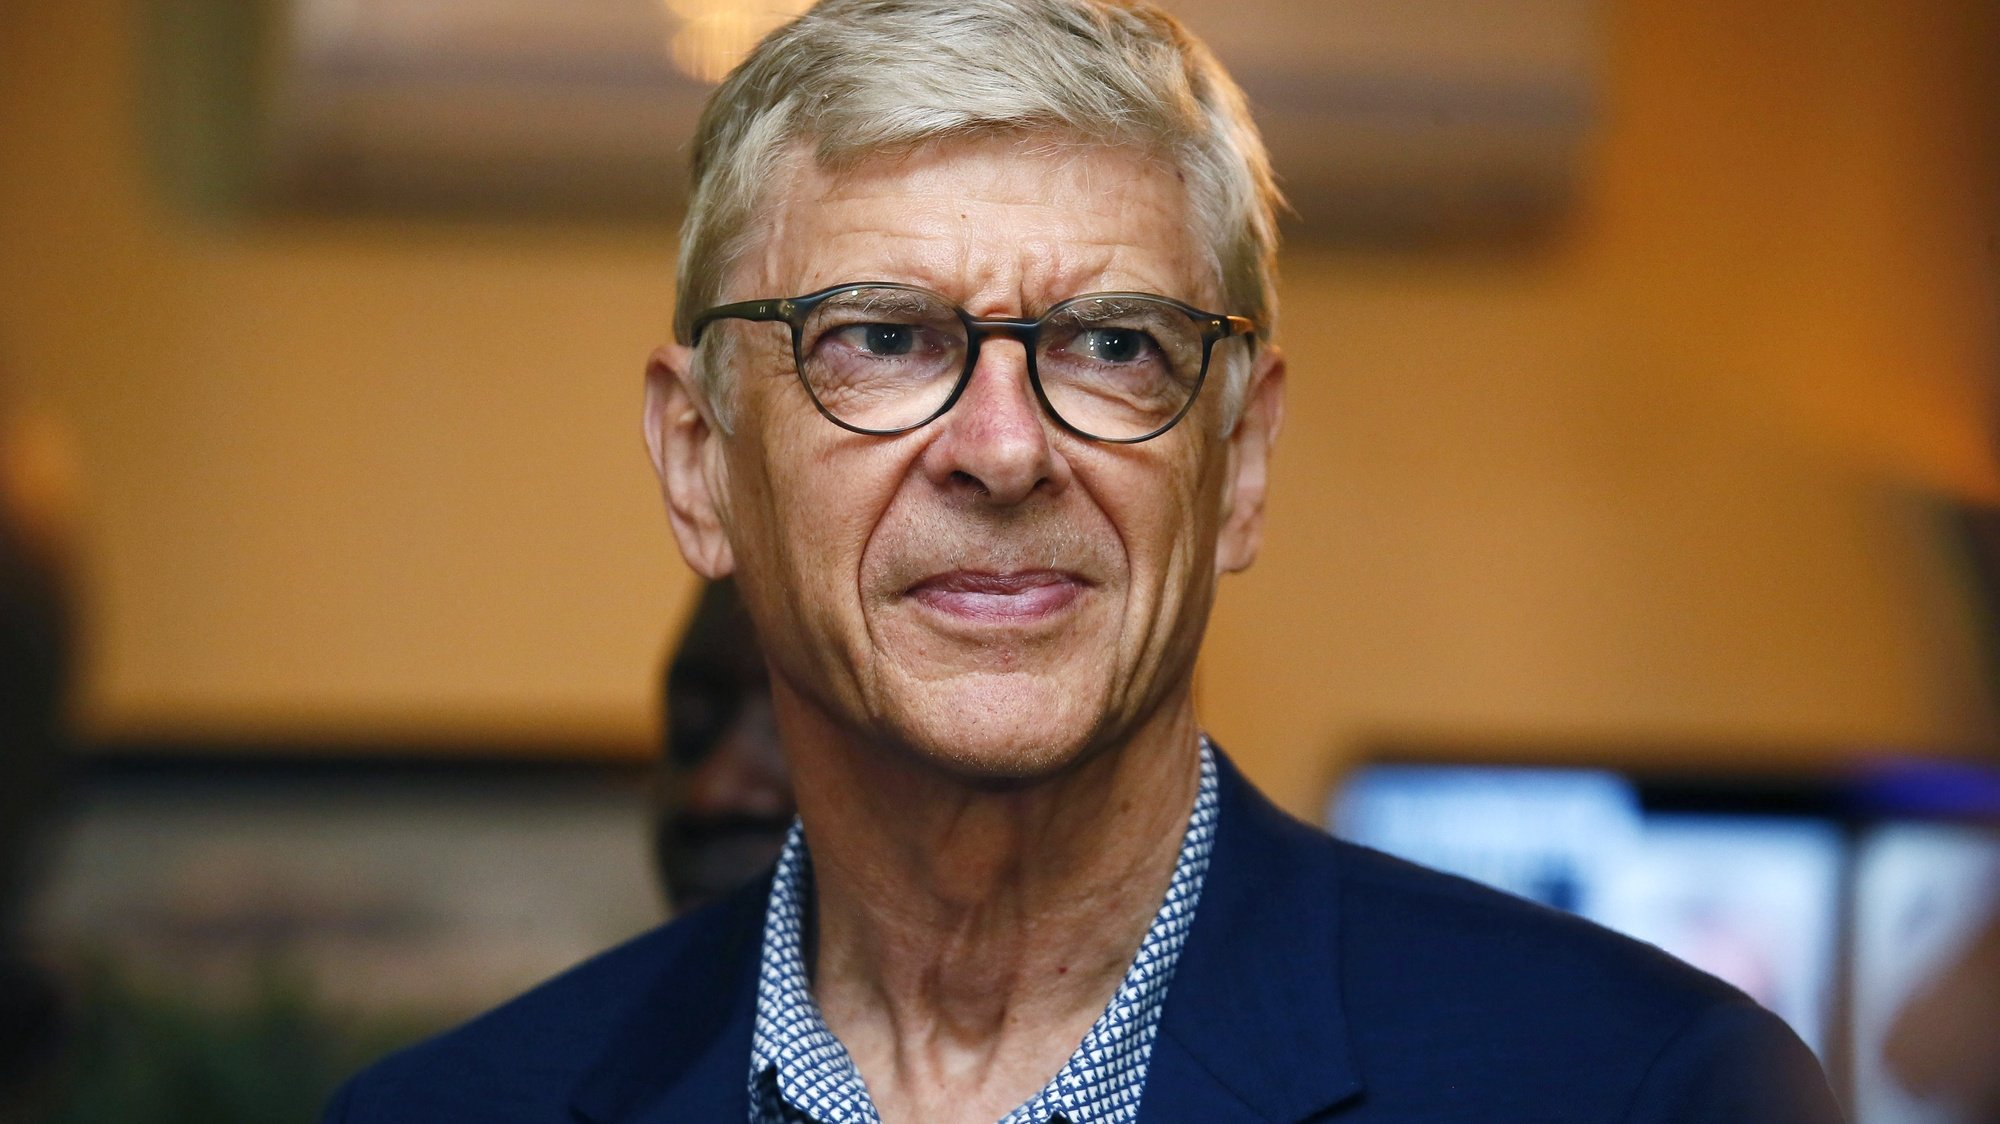 epa06965332 Former soccer coach Arsene Wenger arrives at the Roberts International Airport in Harbel, Liberia, 22 August 2018. Liberian president George Weah is to award his former coach Arsene Wenger his country's highest honour on 23 August 2018.  EPA/AHMED JALLLANZO